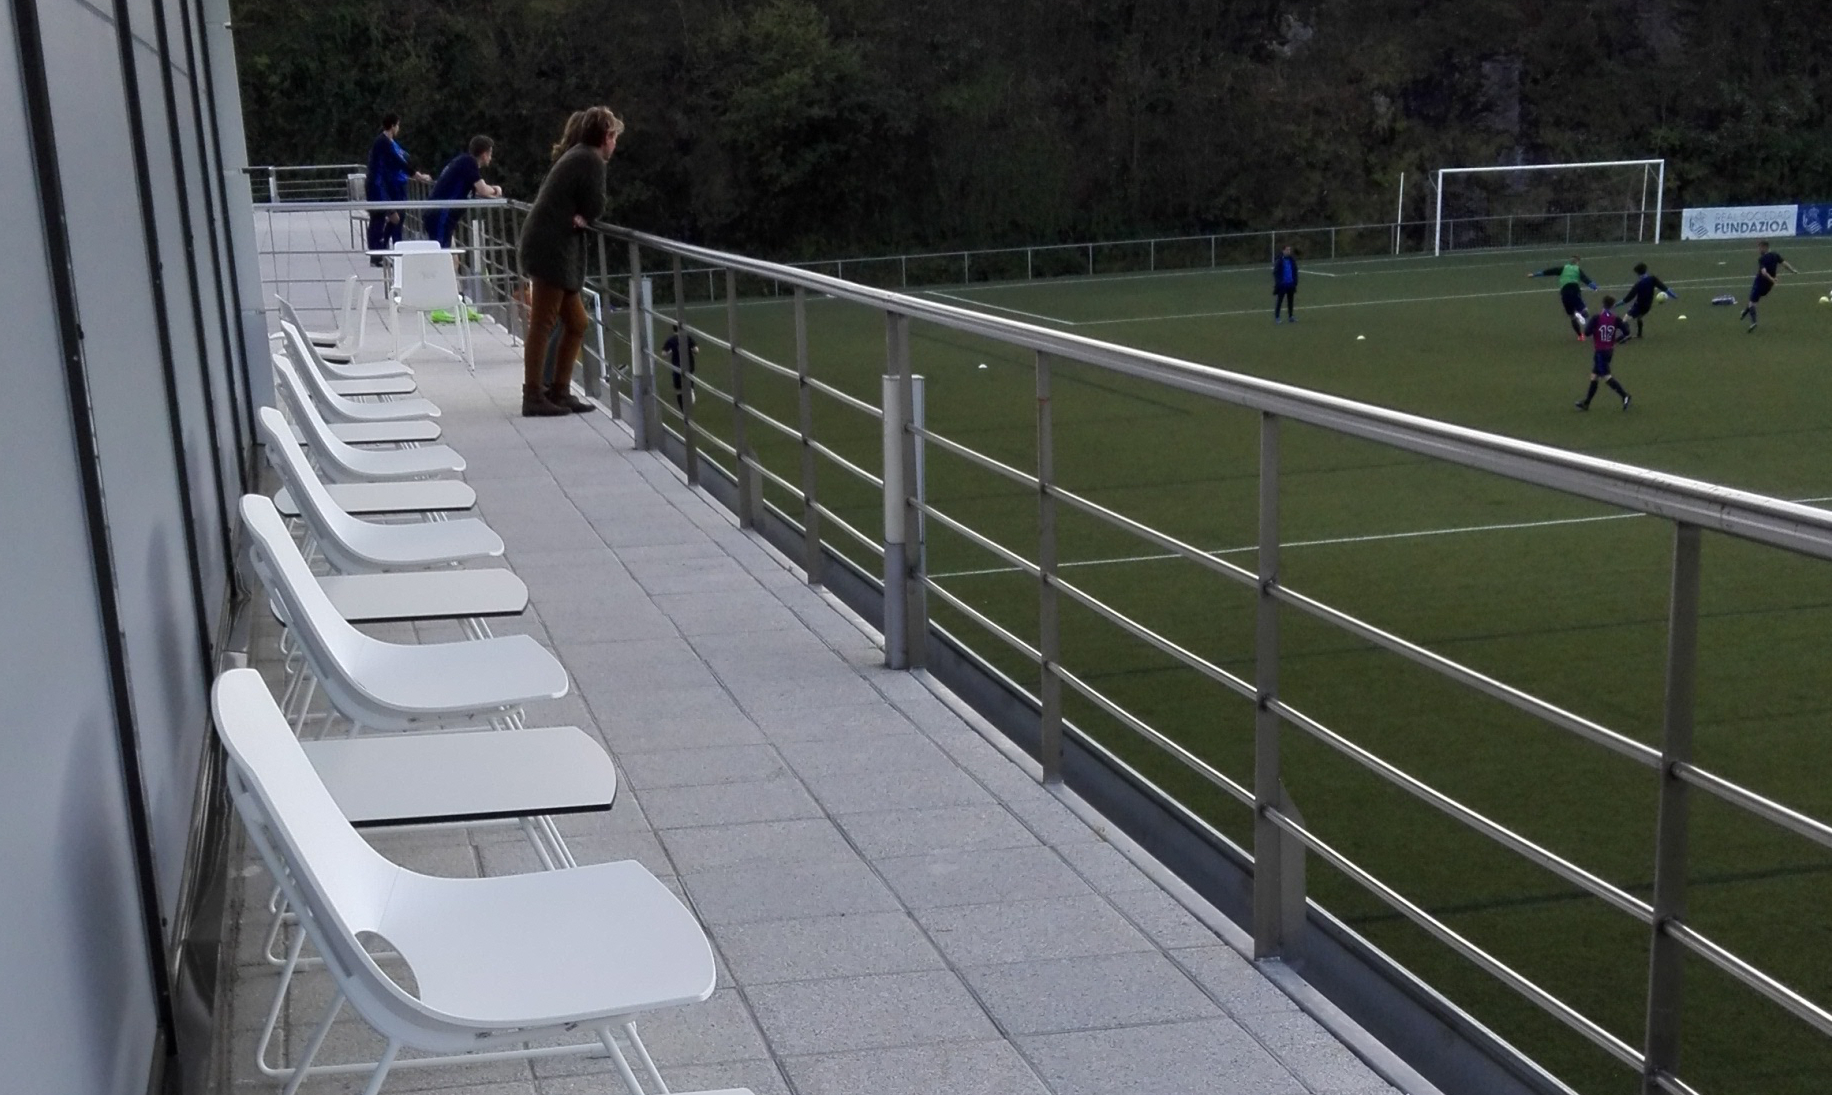 Bar Harrobi – Real Sociedad de Fútbol — Enea Design